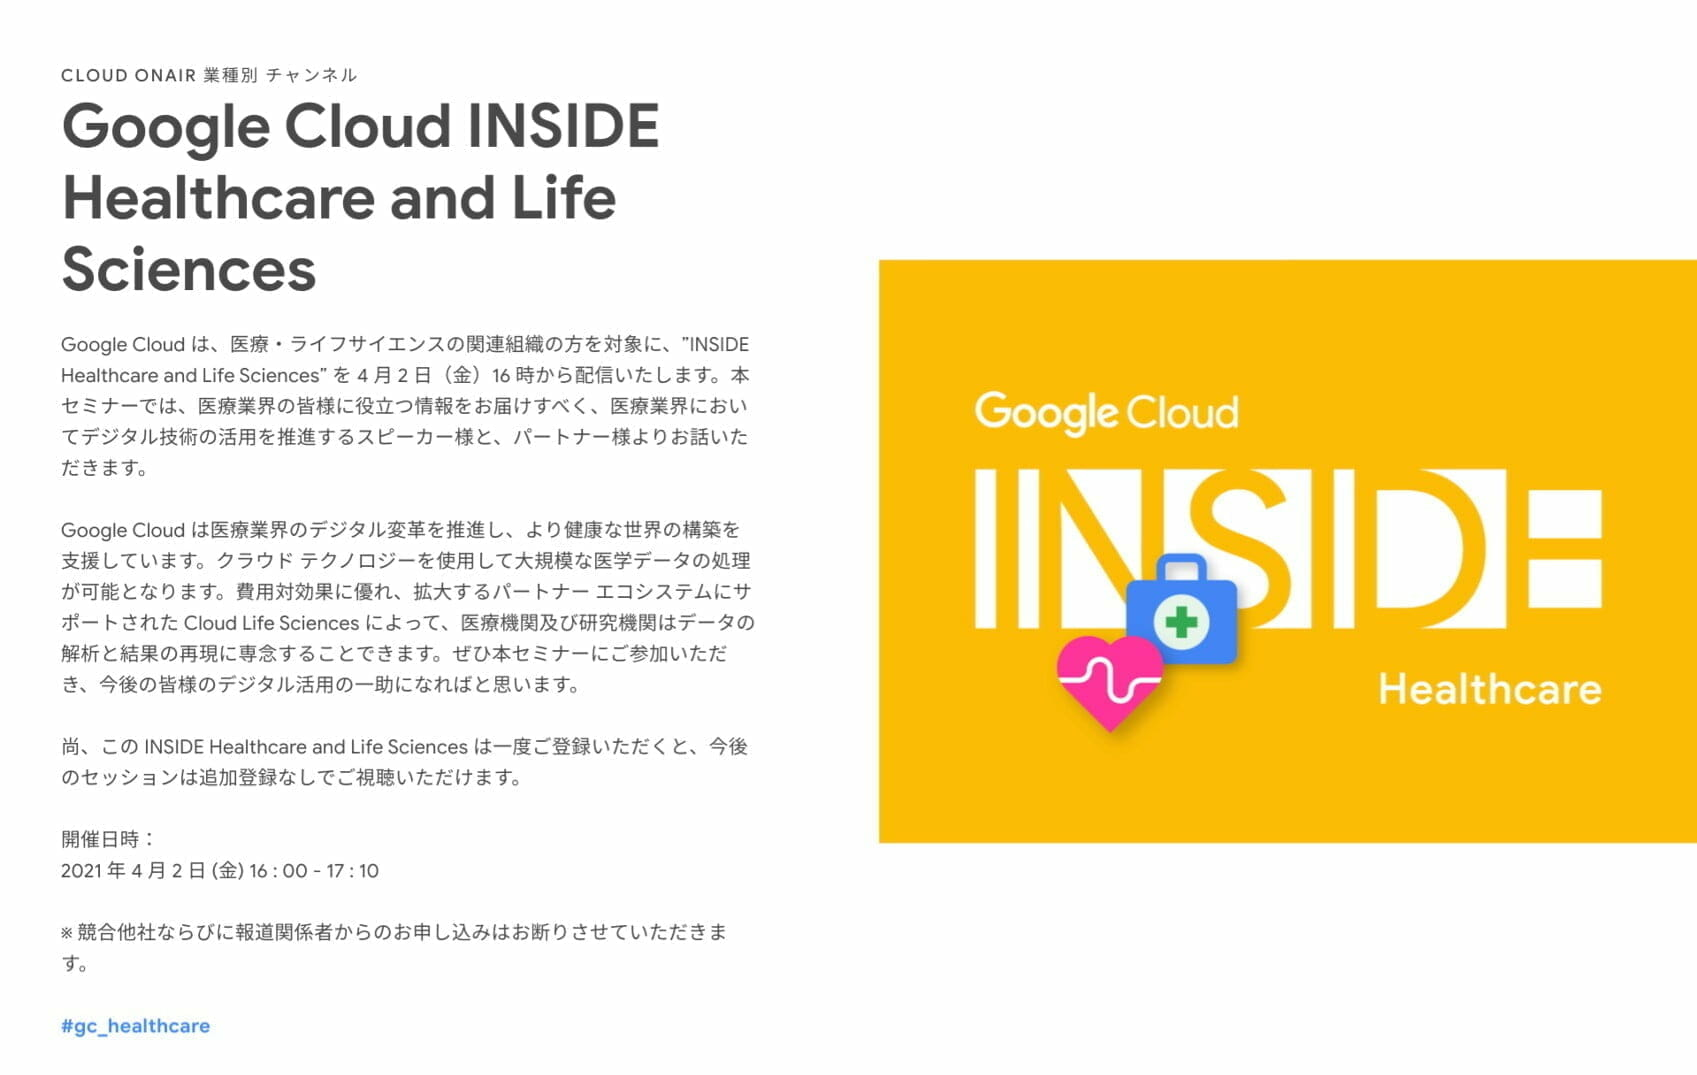 [GCP] Google Cloud INSIDE Healthcare and Life Sciences